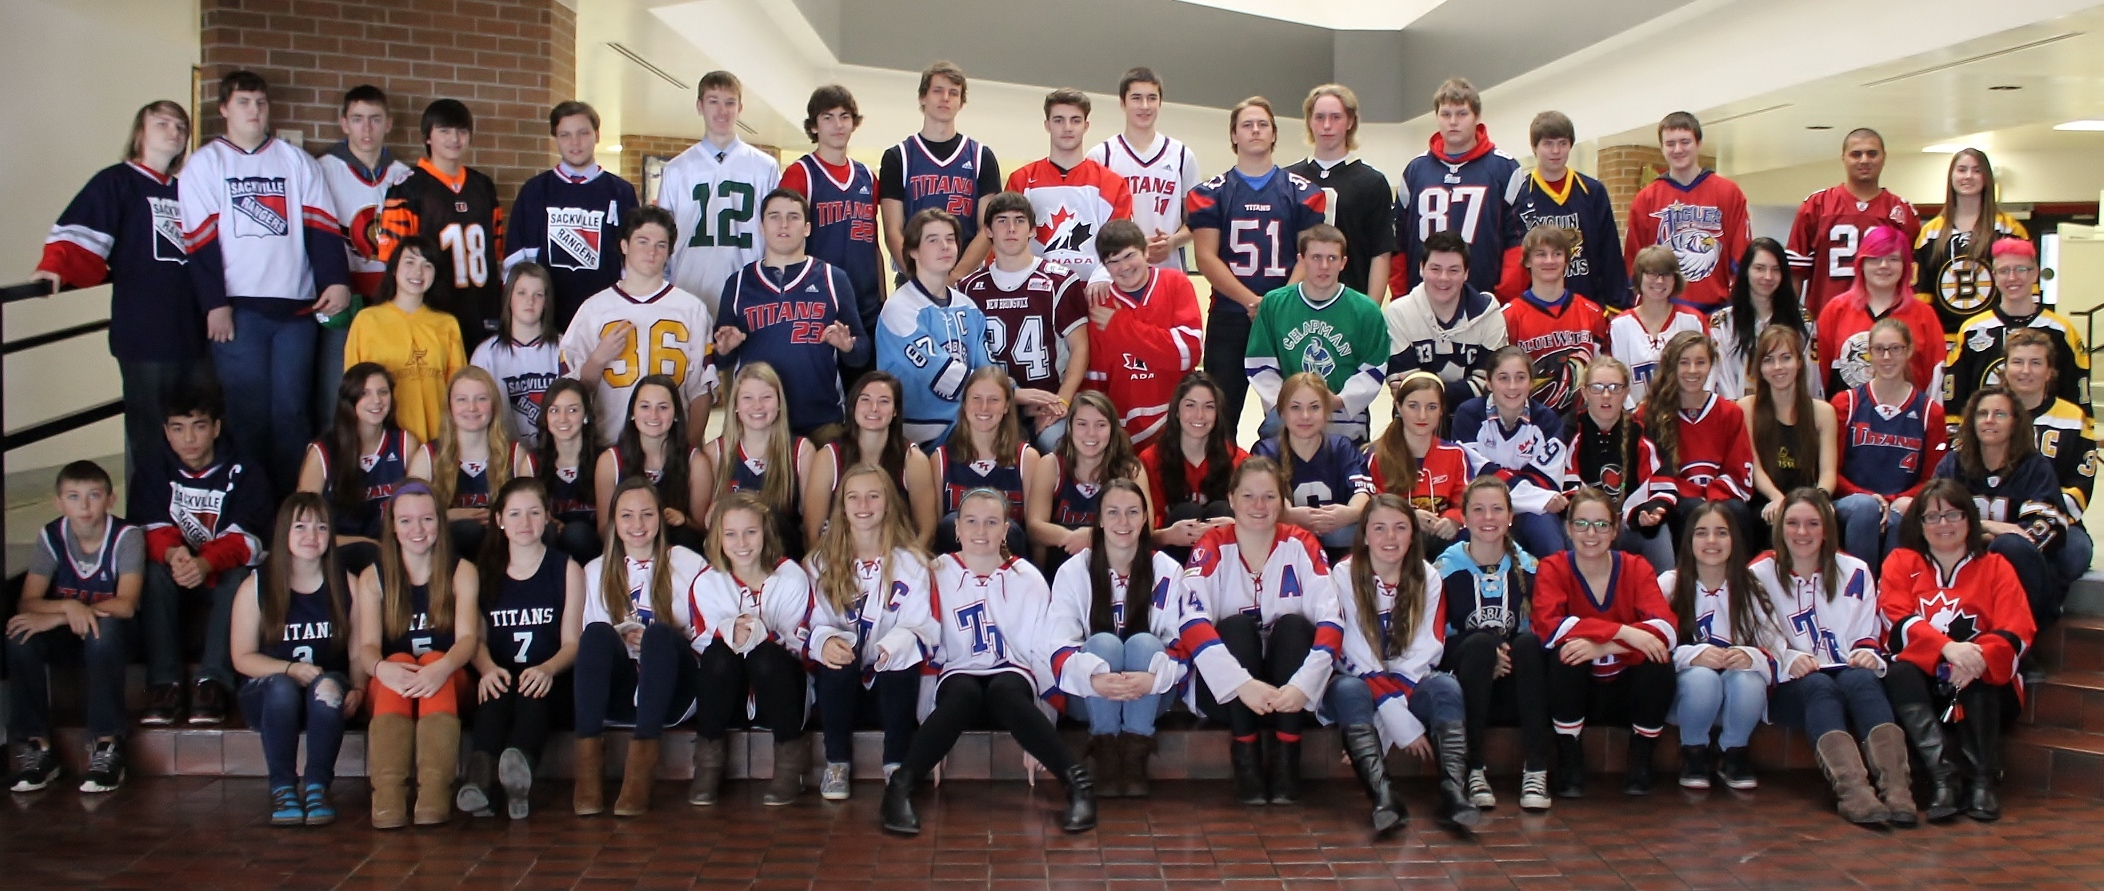 jersey day 2016 canada